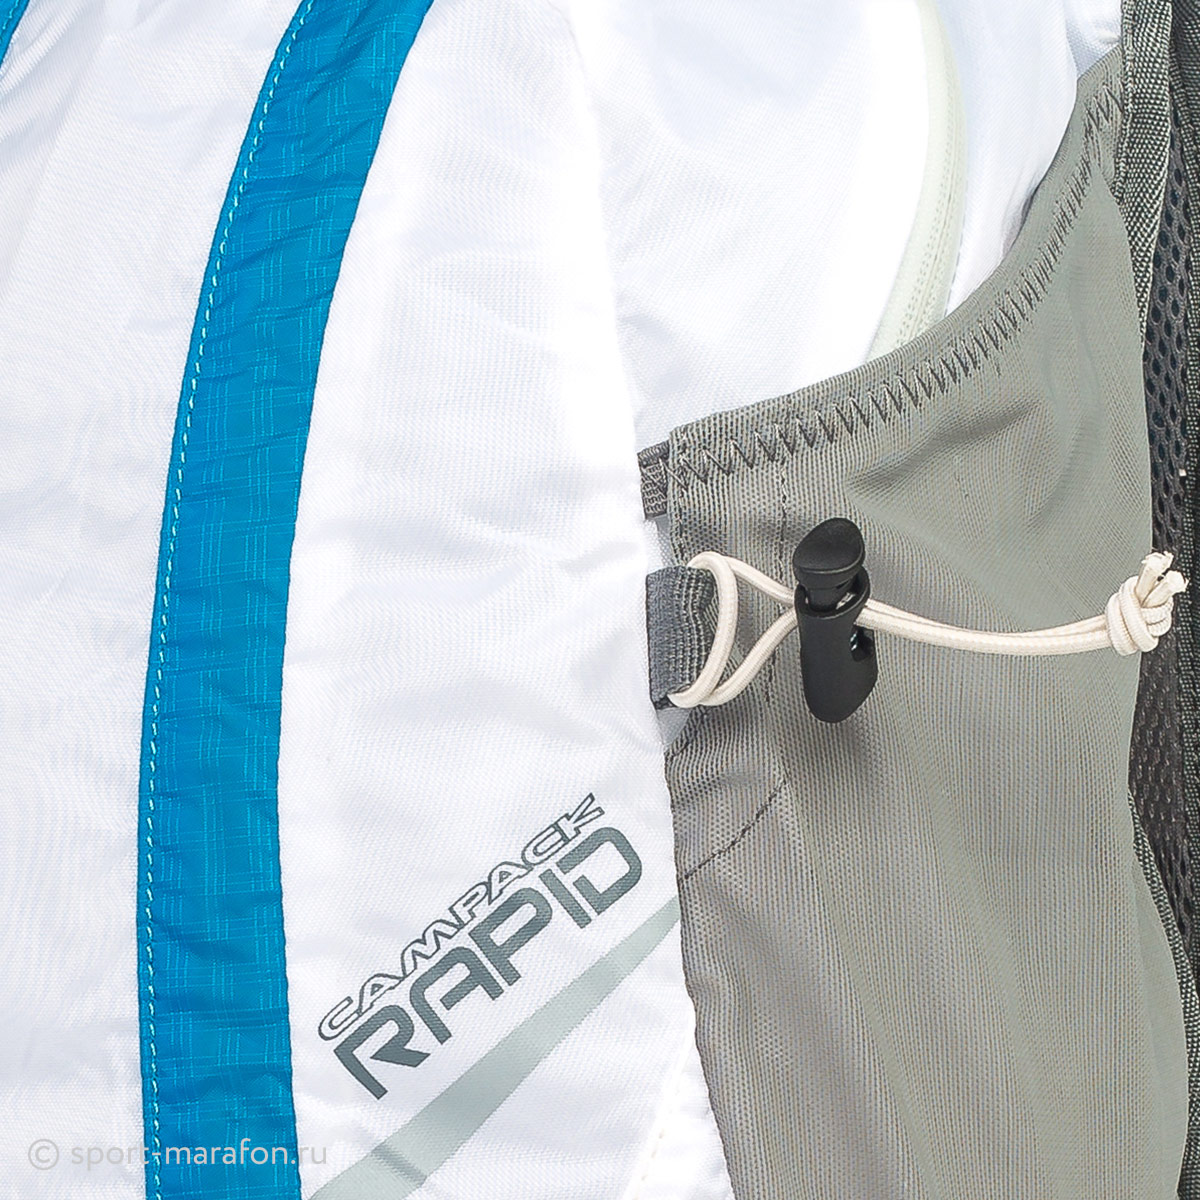 Рюкзак Camp Rapid 20 White/Light Blue - Фото 9 большая